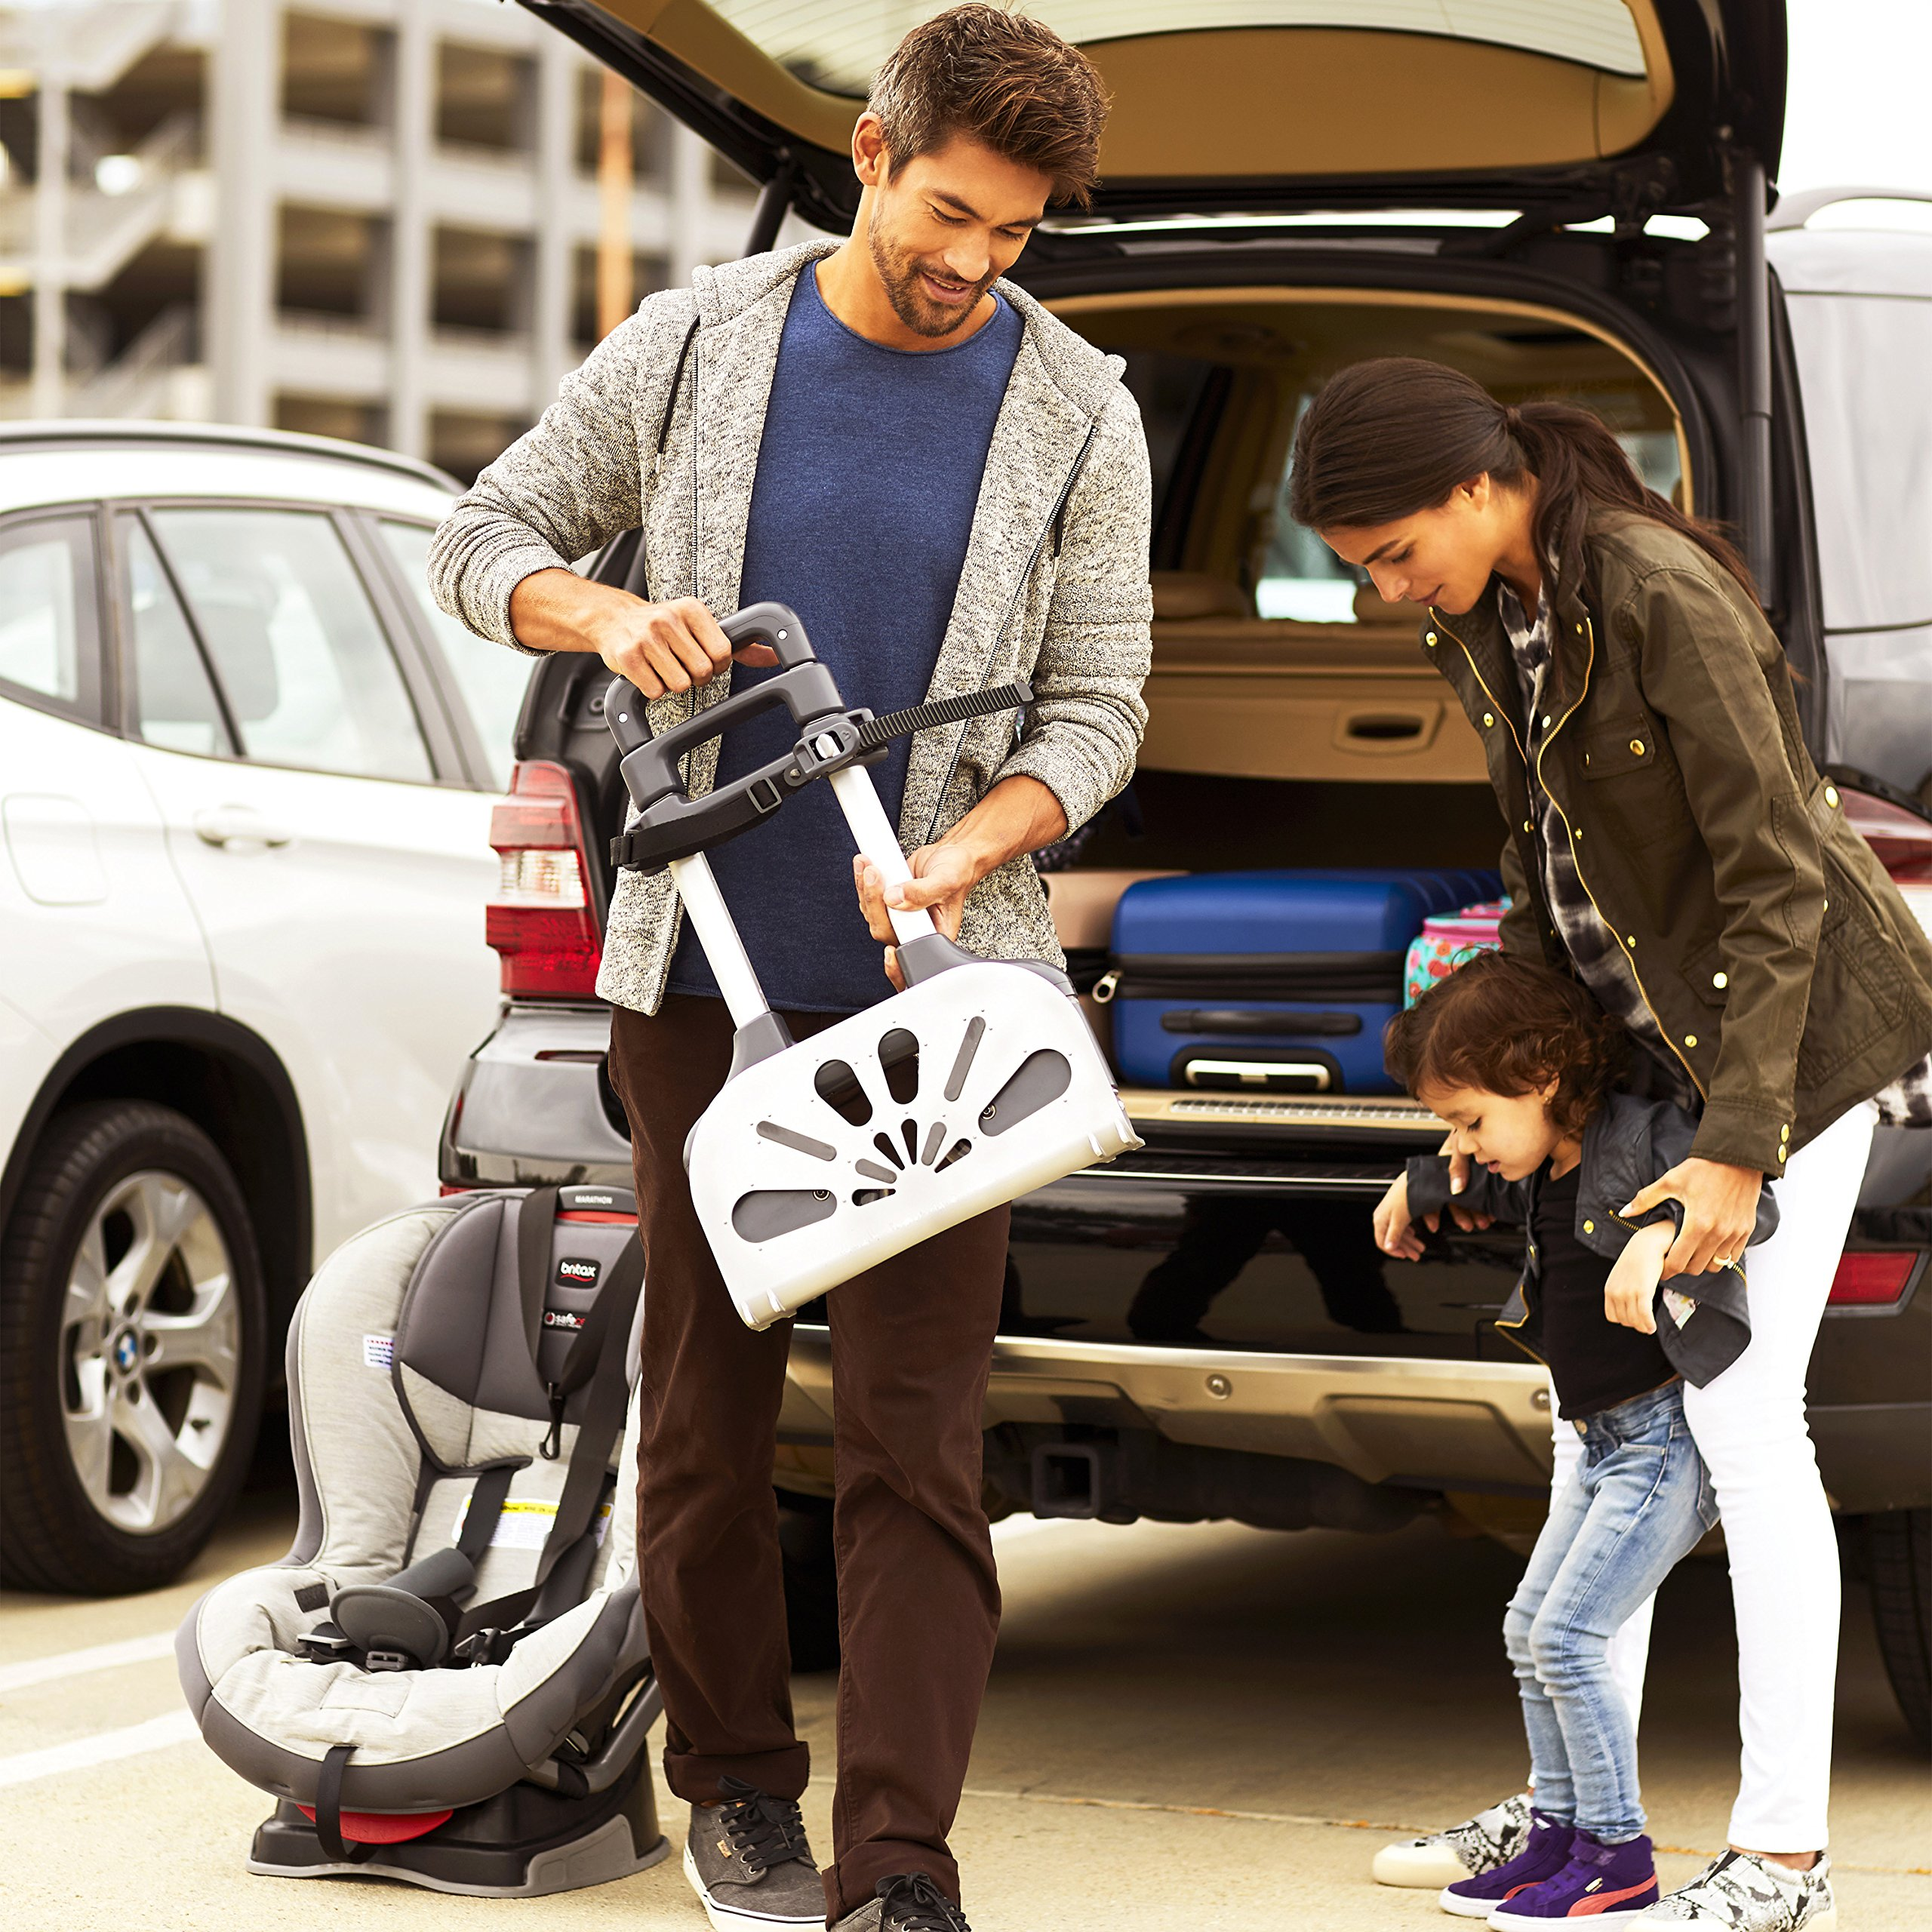 Brica Smart Move Car Seat Travel Cart, Airport Transporter, Grey by Munchkin (Image #3)